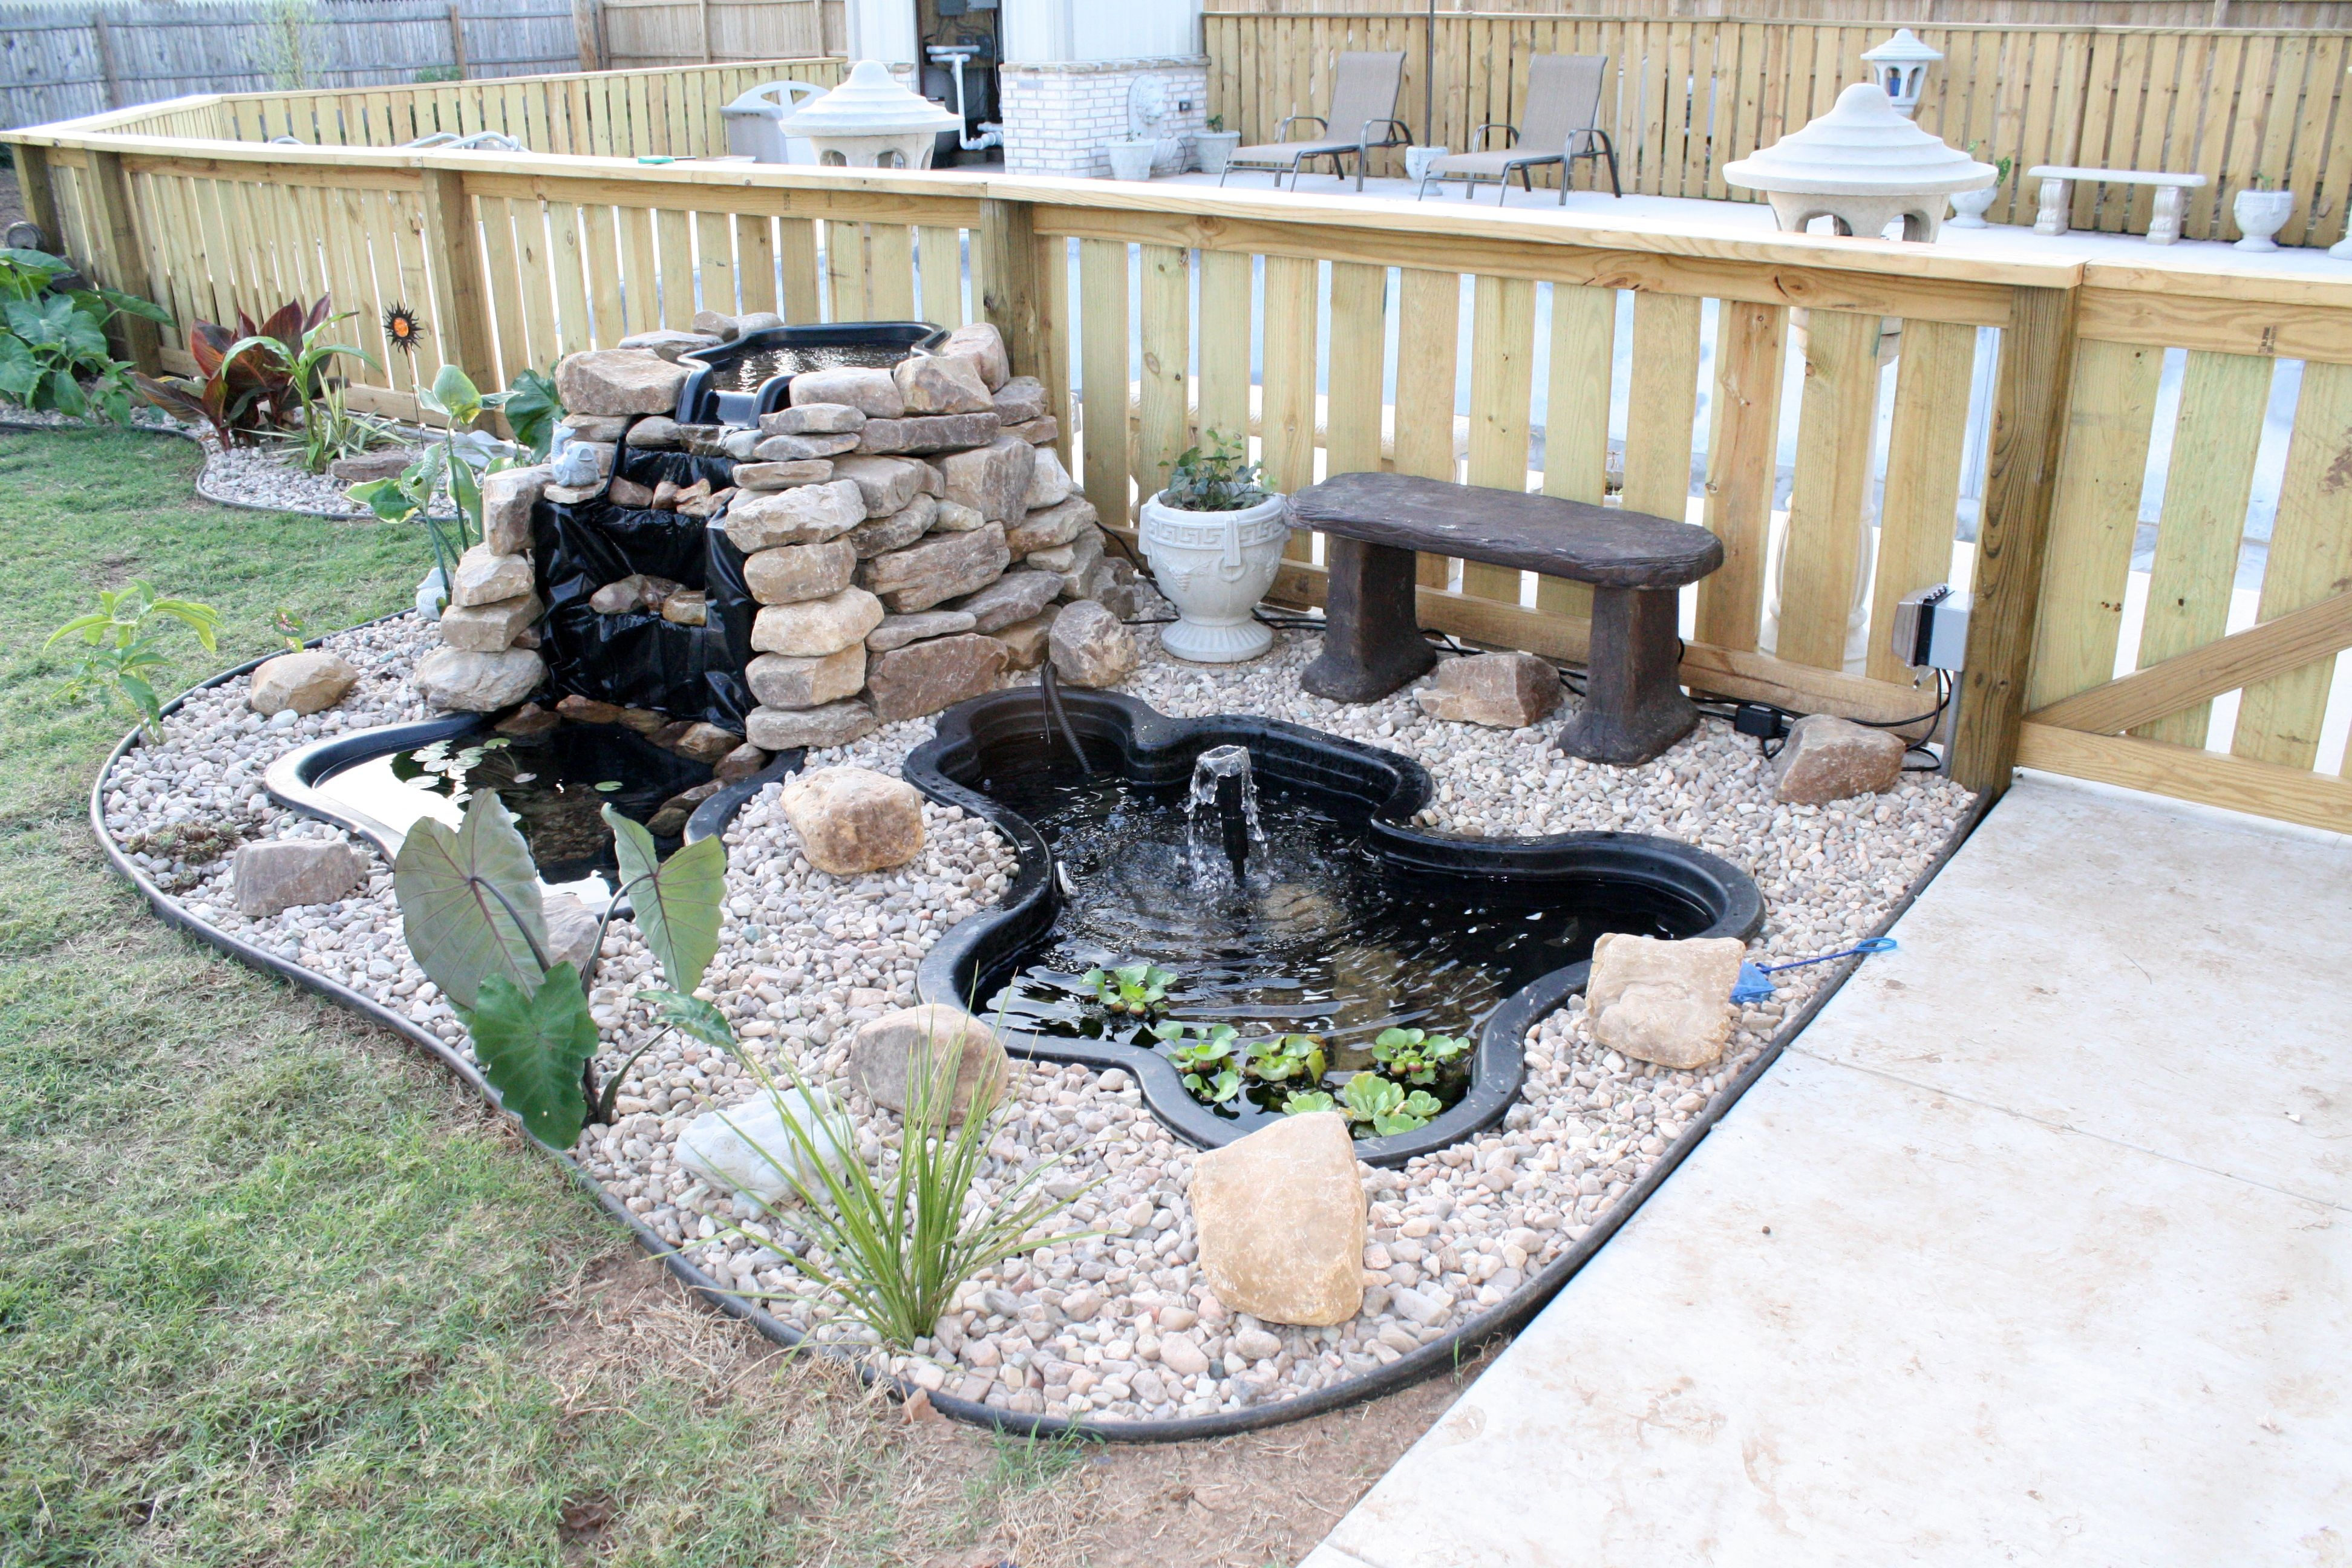 Pictures of fish ponds in backyards 28 images backyard for Koi pond builders sydney